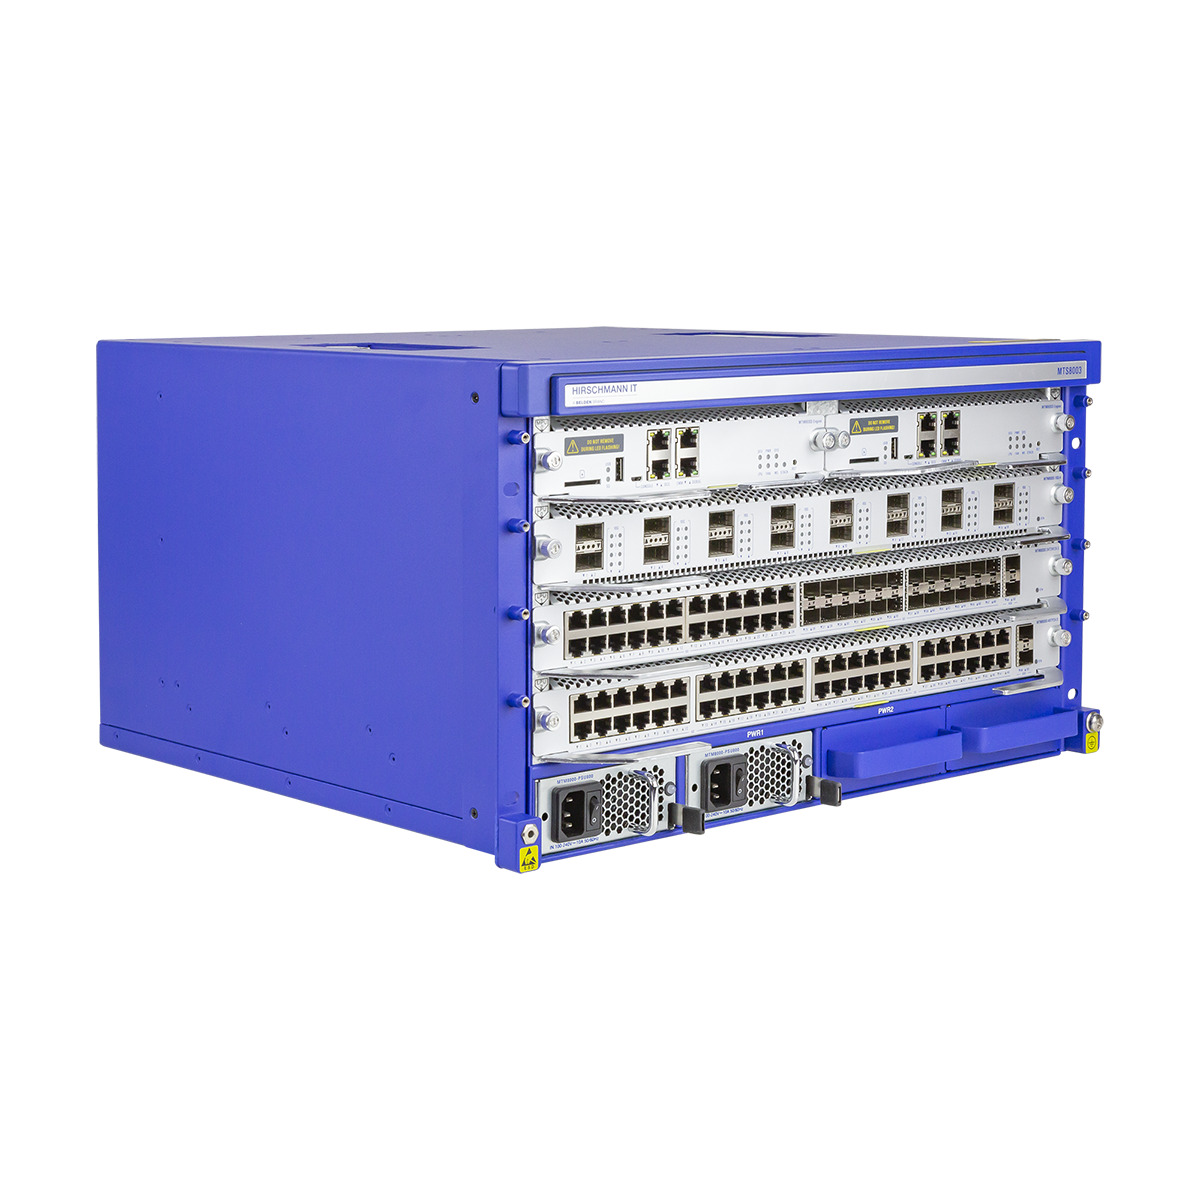 MTS8000 Managed Ethernet Switch Side View